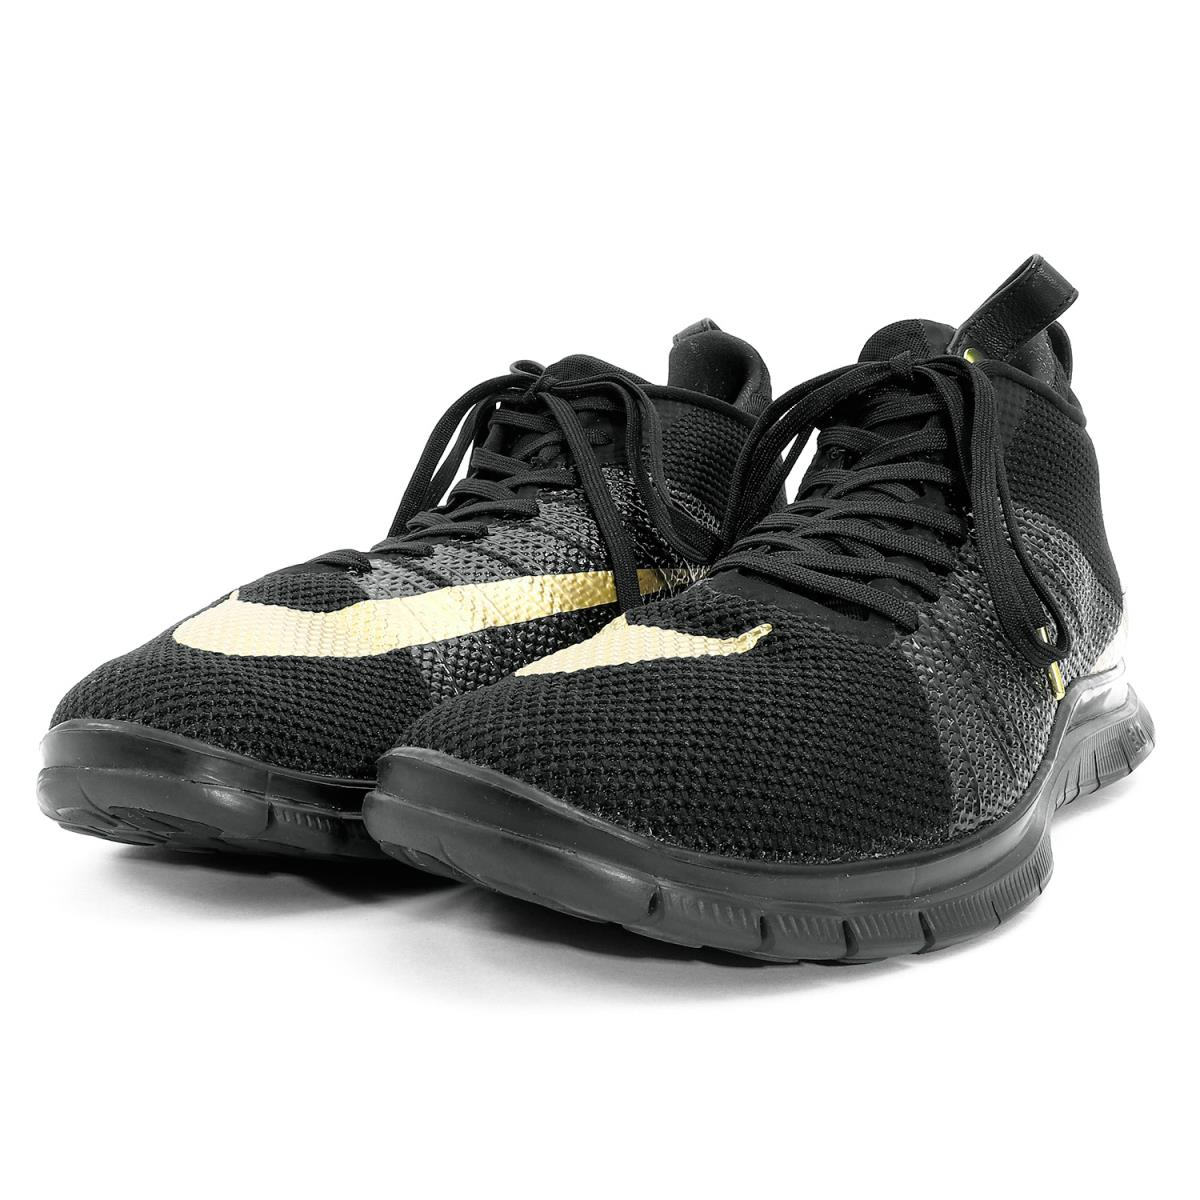 8a80c6aa93f BEEGLE by Boo-Bee  NIKE (Nike) X Olivier Rousteing NikeLab FREE ...